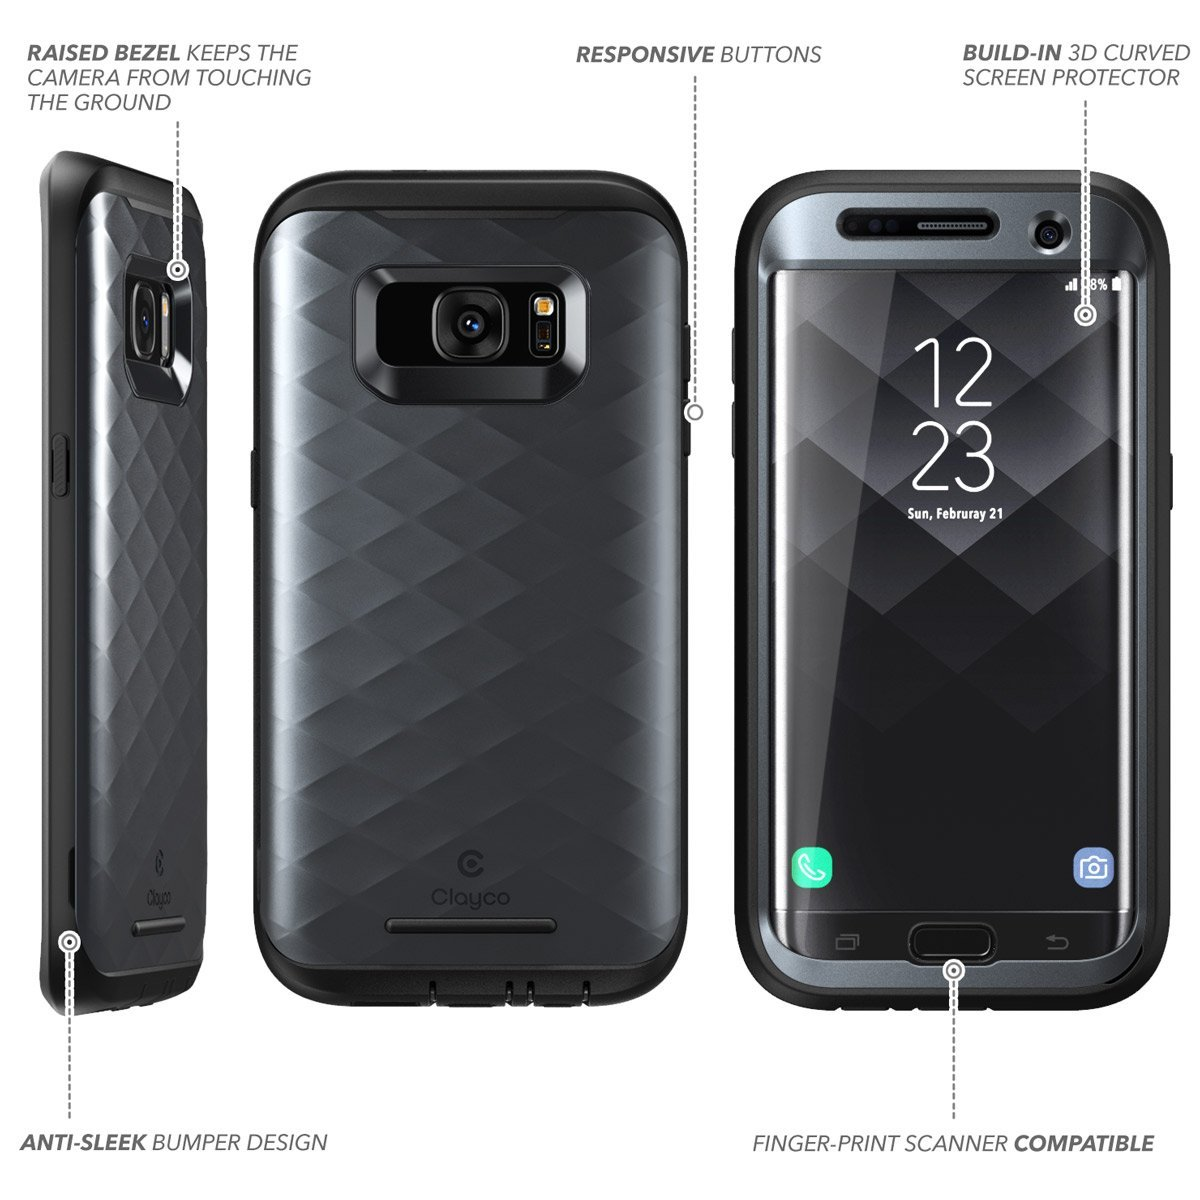 huge discount fd1f2 685d8 Galaxy S7 Edge Case, [Hera Series] Full-body Rugged Case with Built-in  Screen Protector for Samsung Galaxy S7 Edge (2016 Release) (Black)